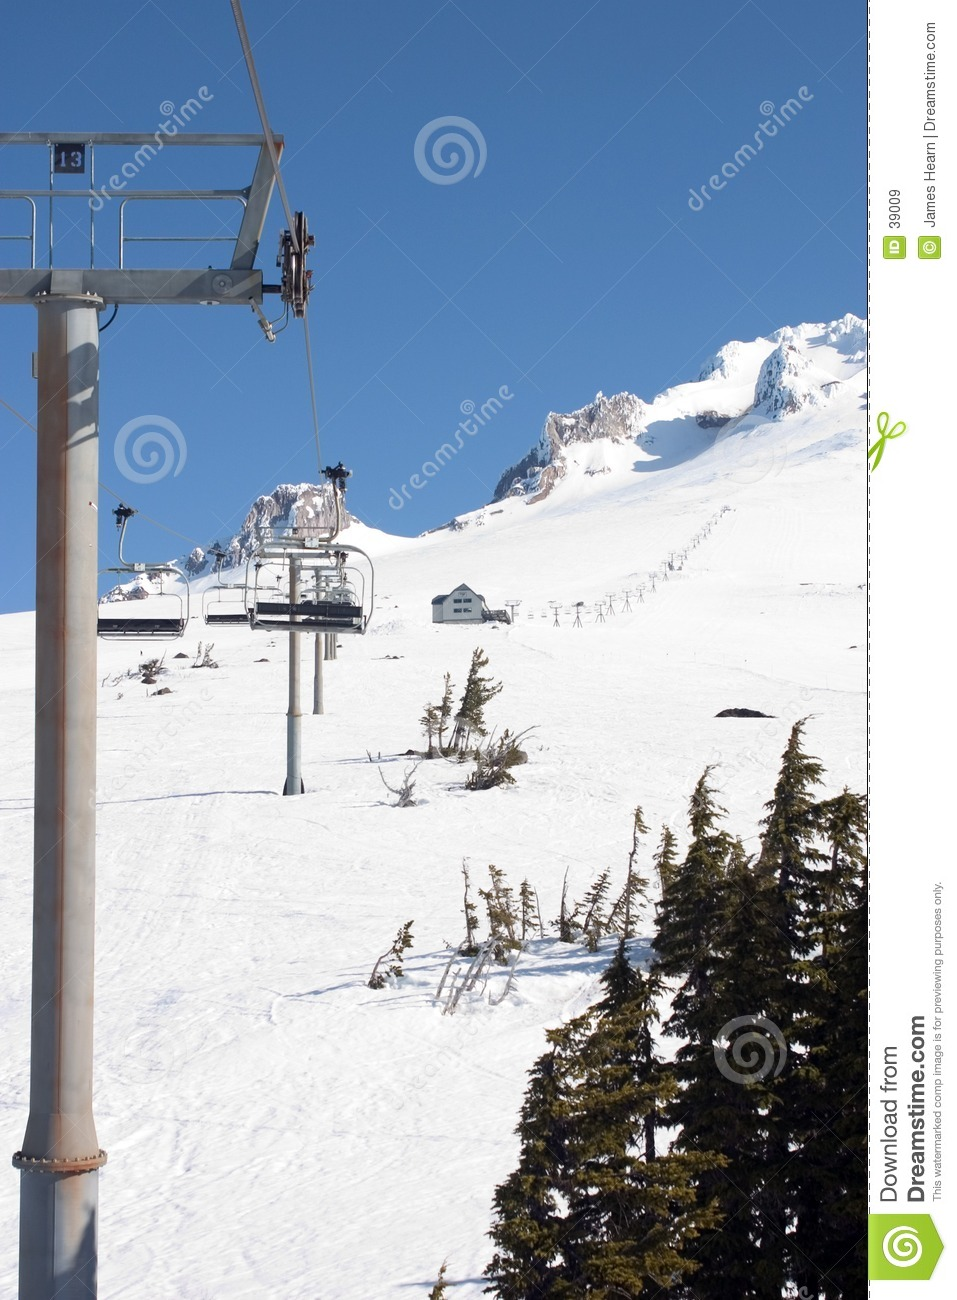 Another Ski Lift on Mt Hood.